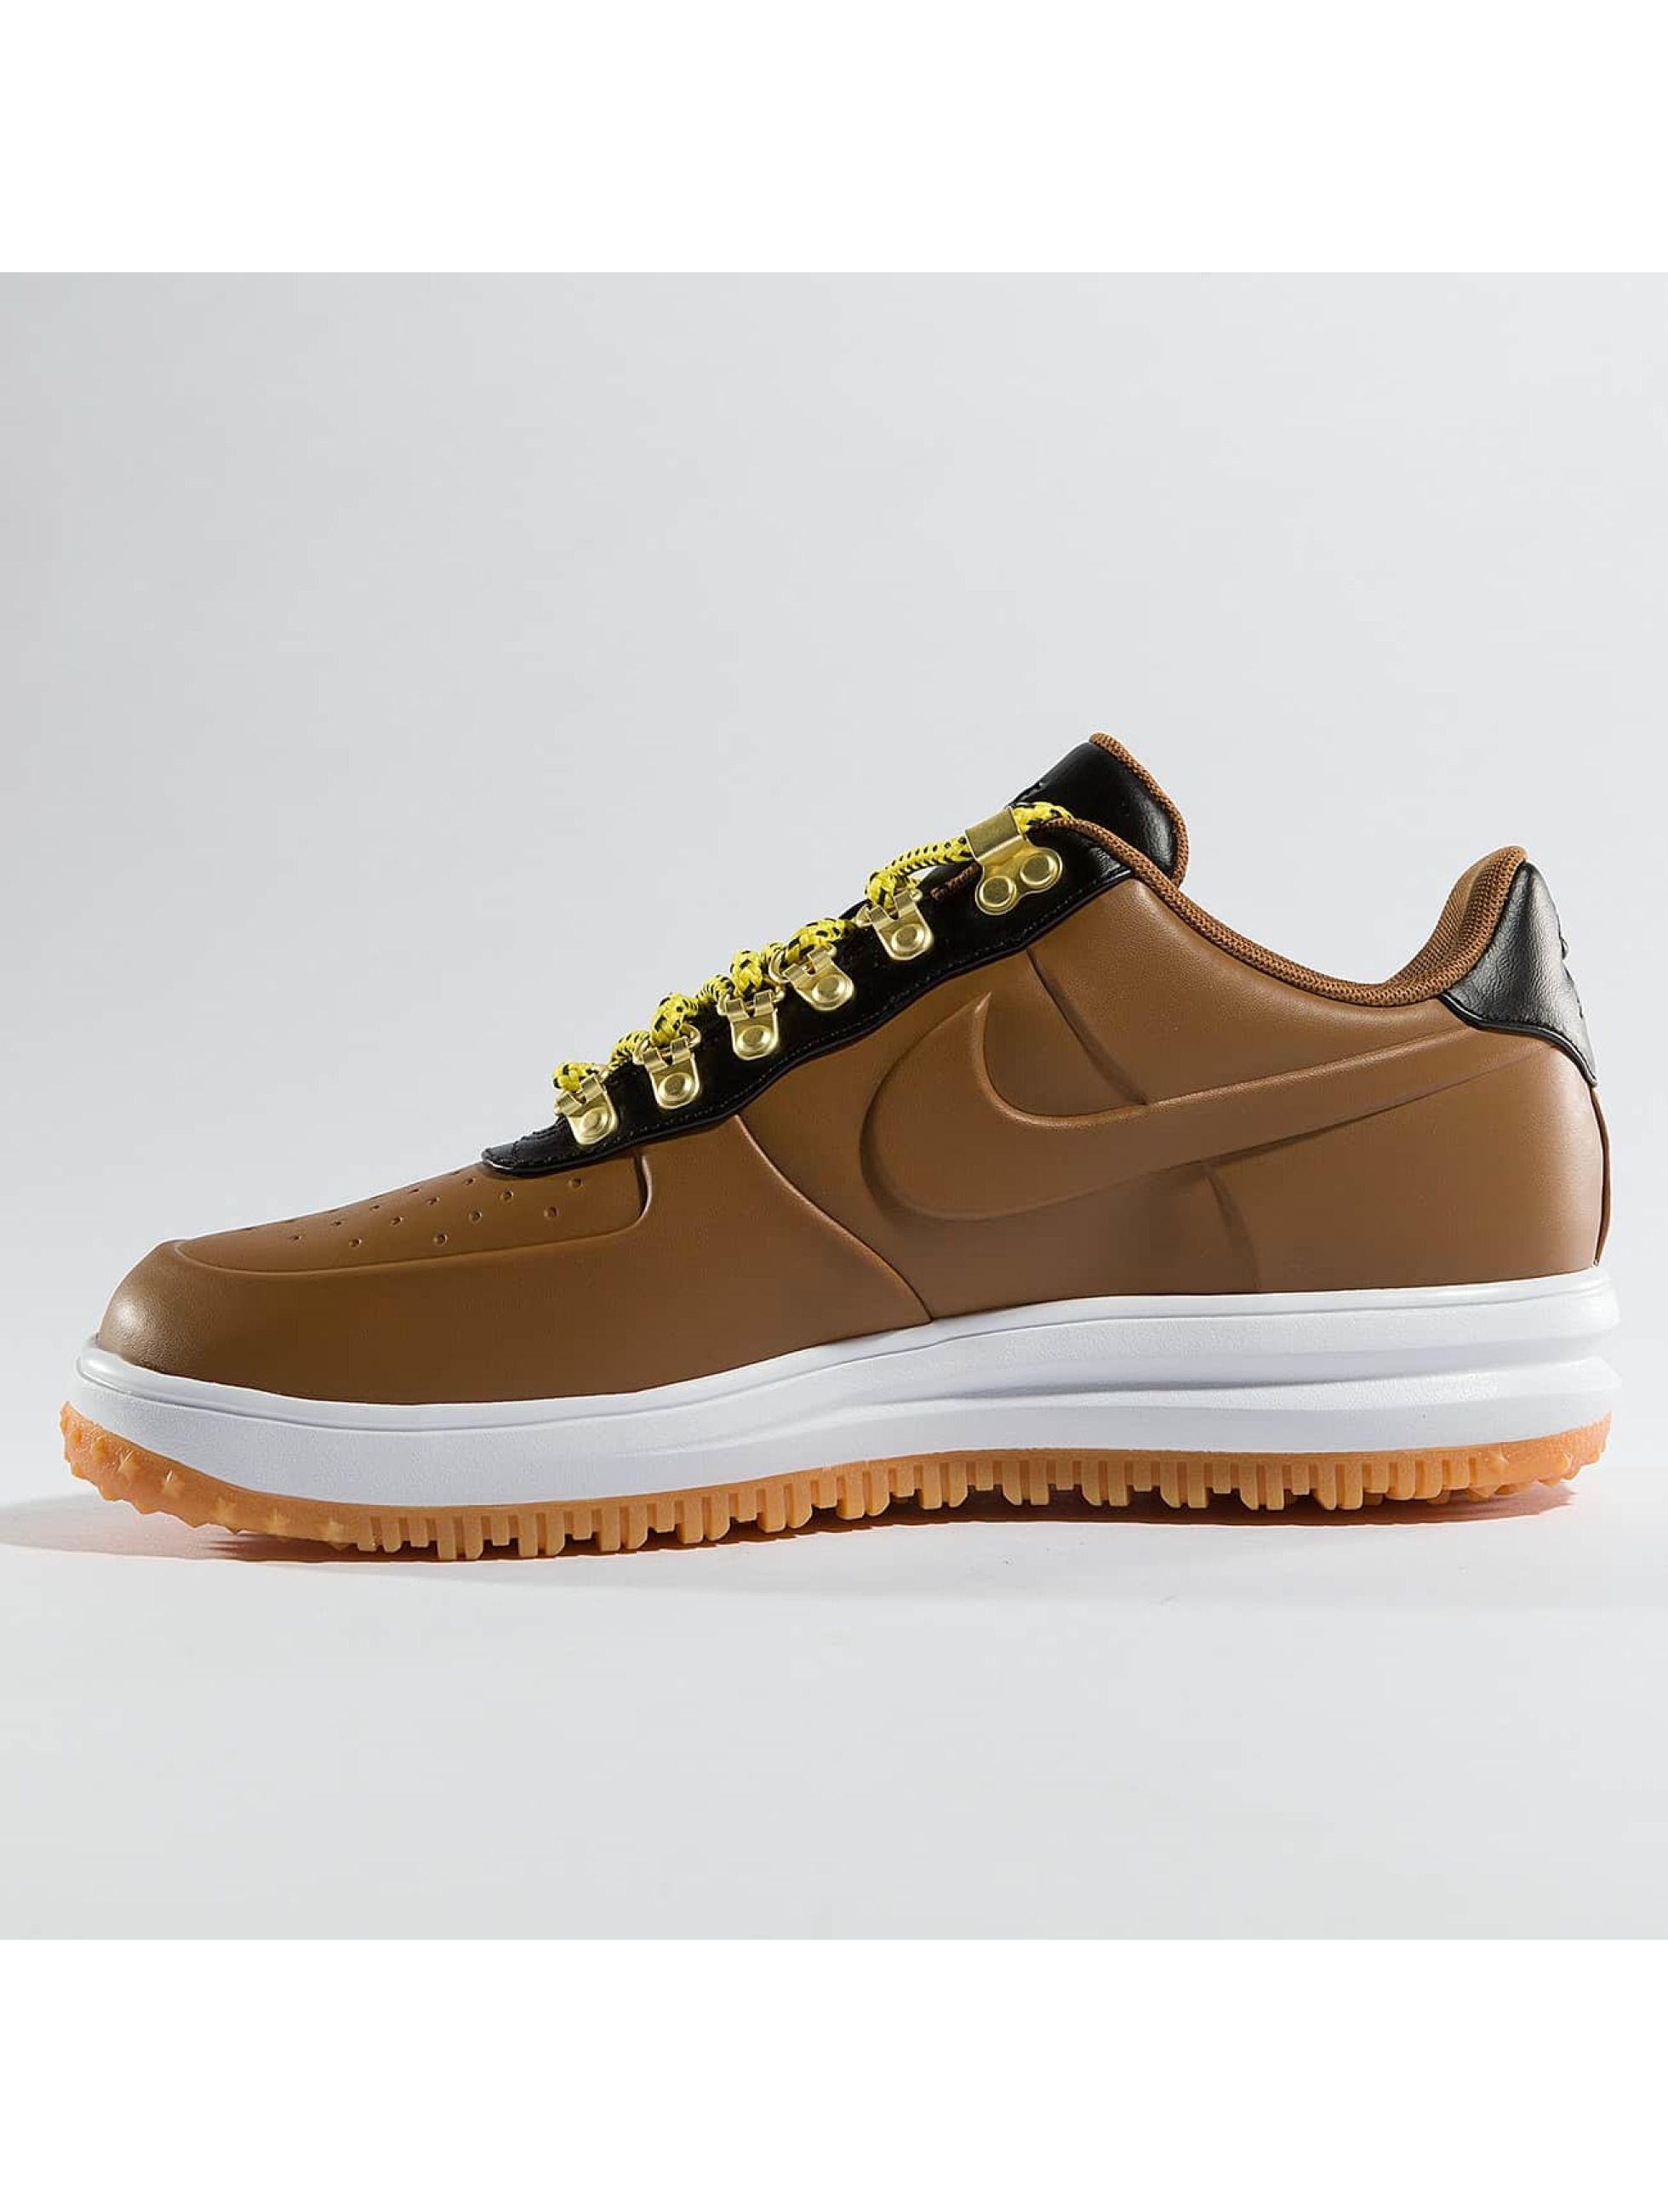 Nike Baskets Lunar Force 1 Low Duckboot brun